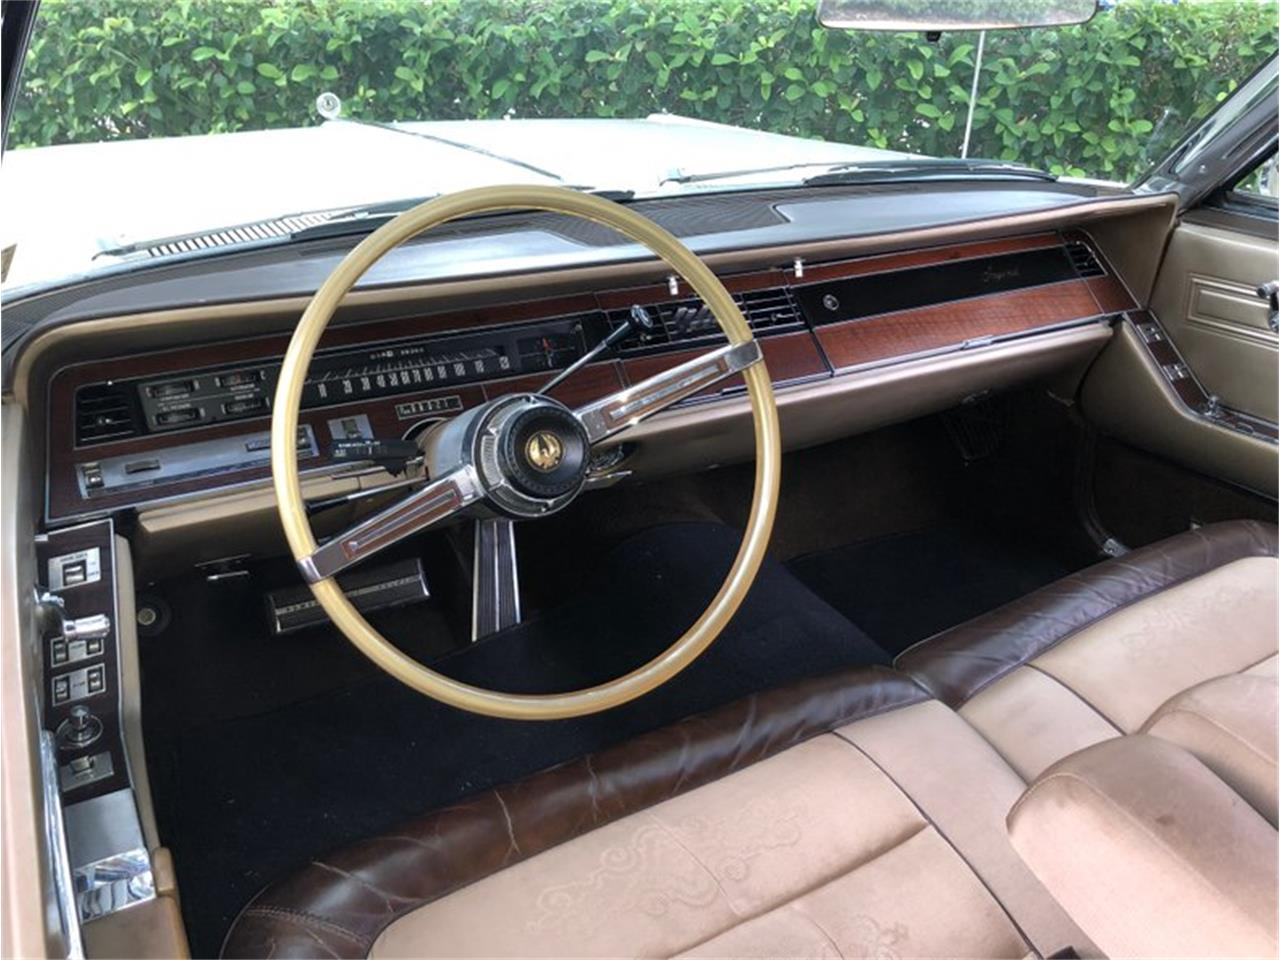 Large Picture of Classic 1967 Chrysler Imperial - $11,900.00 - QIWP